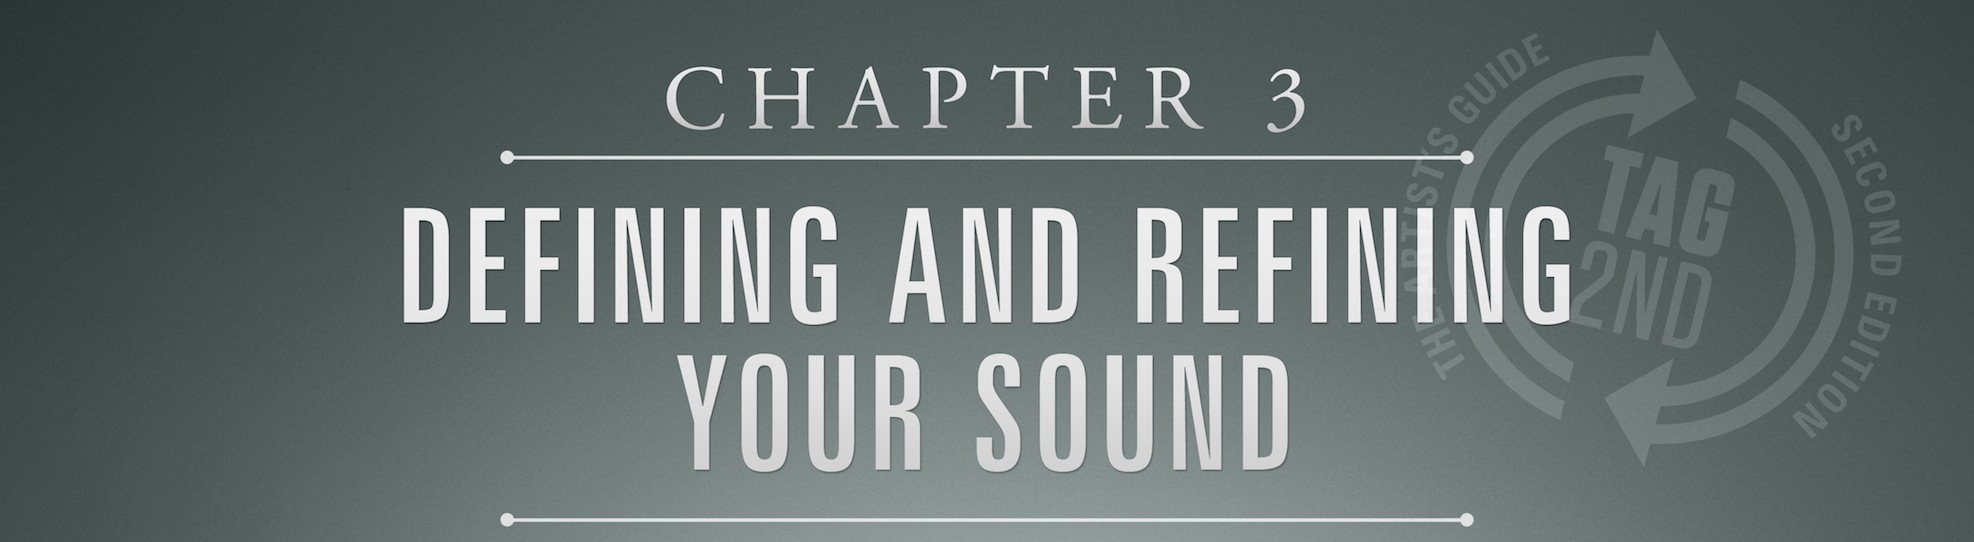 chapter 3, artists guide, defining and refining your sound